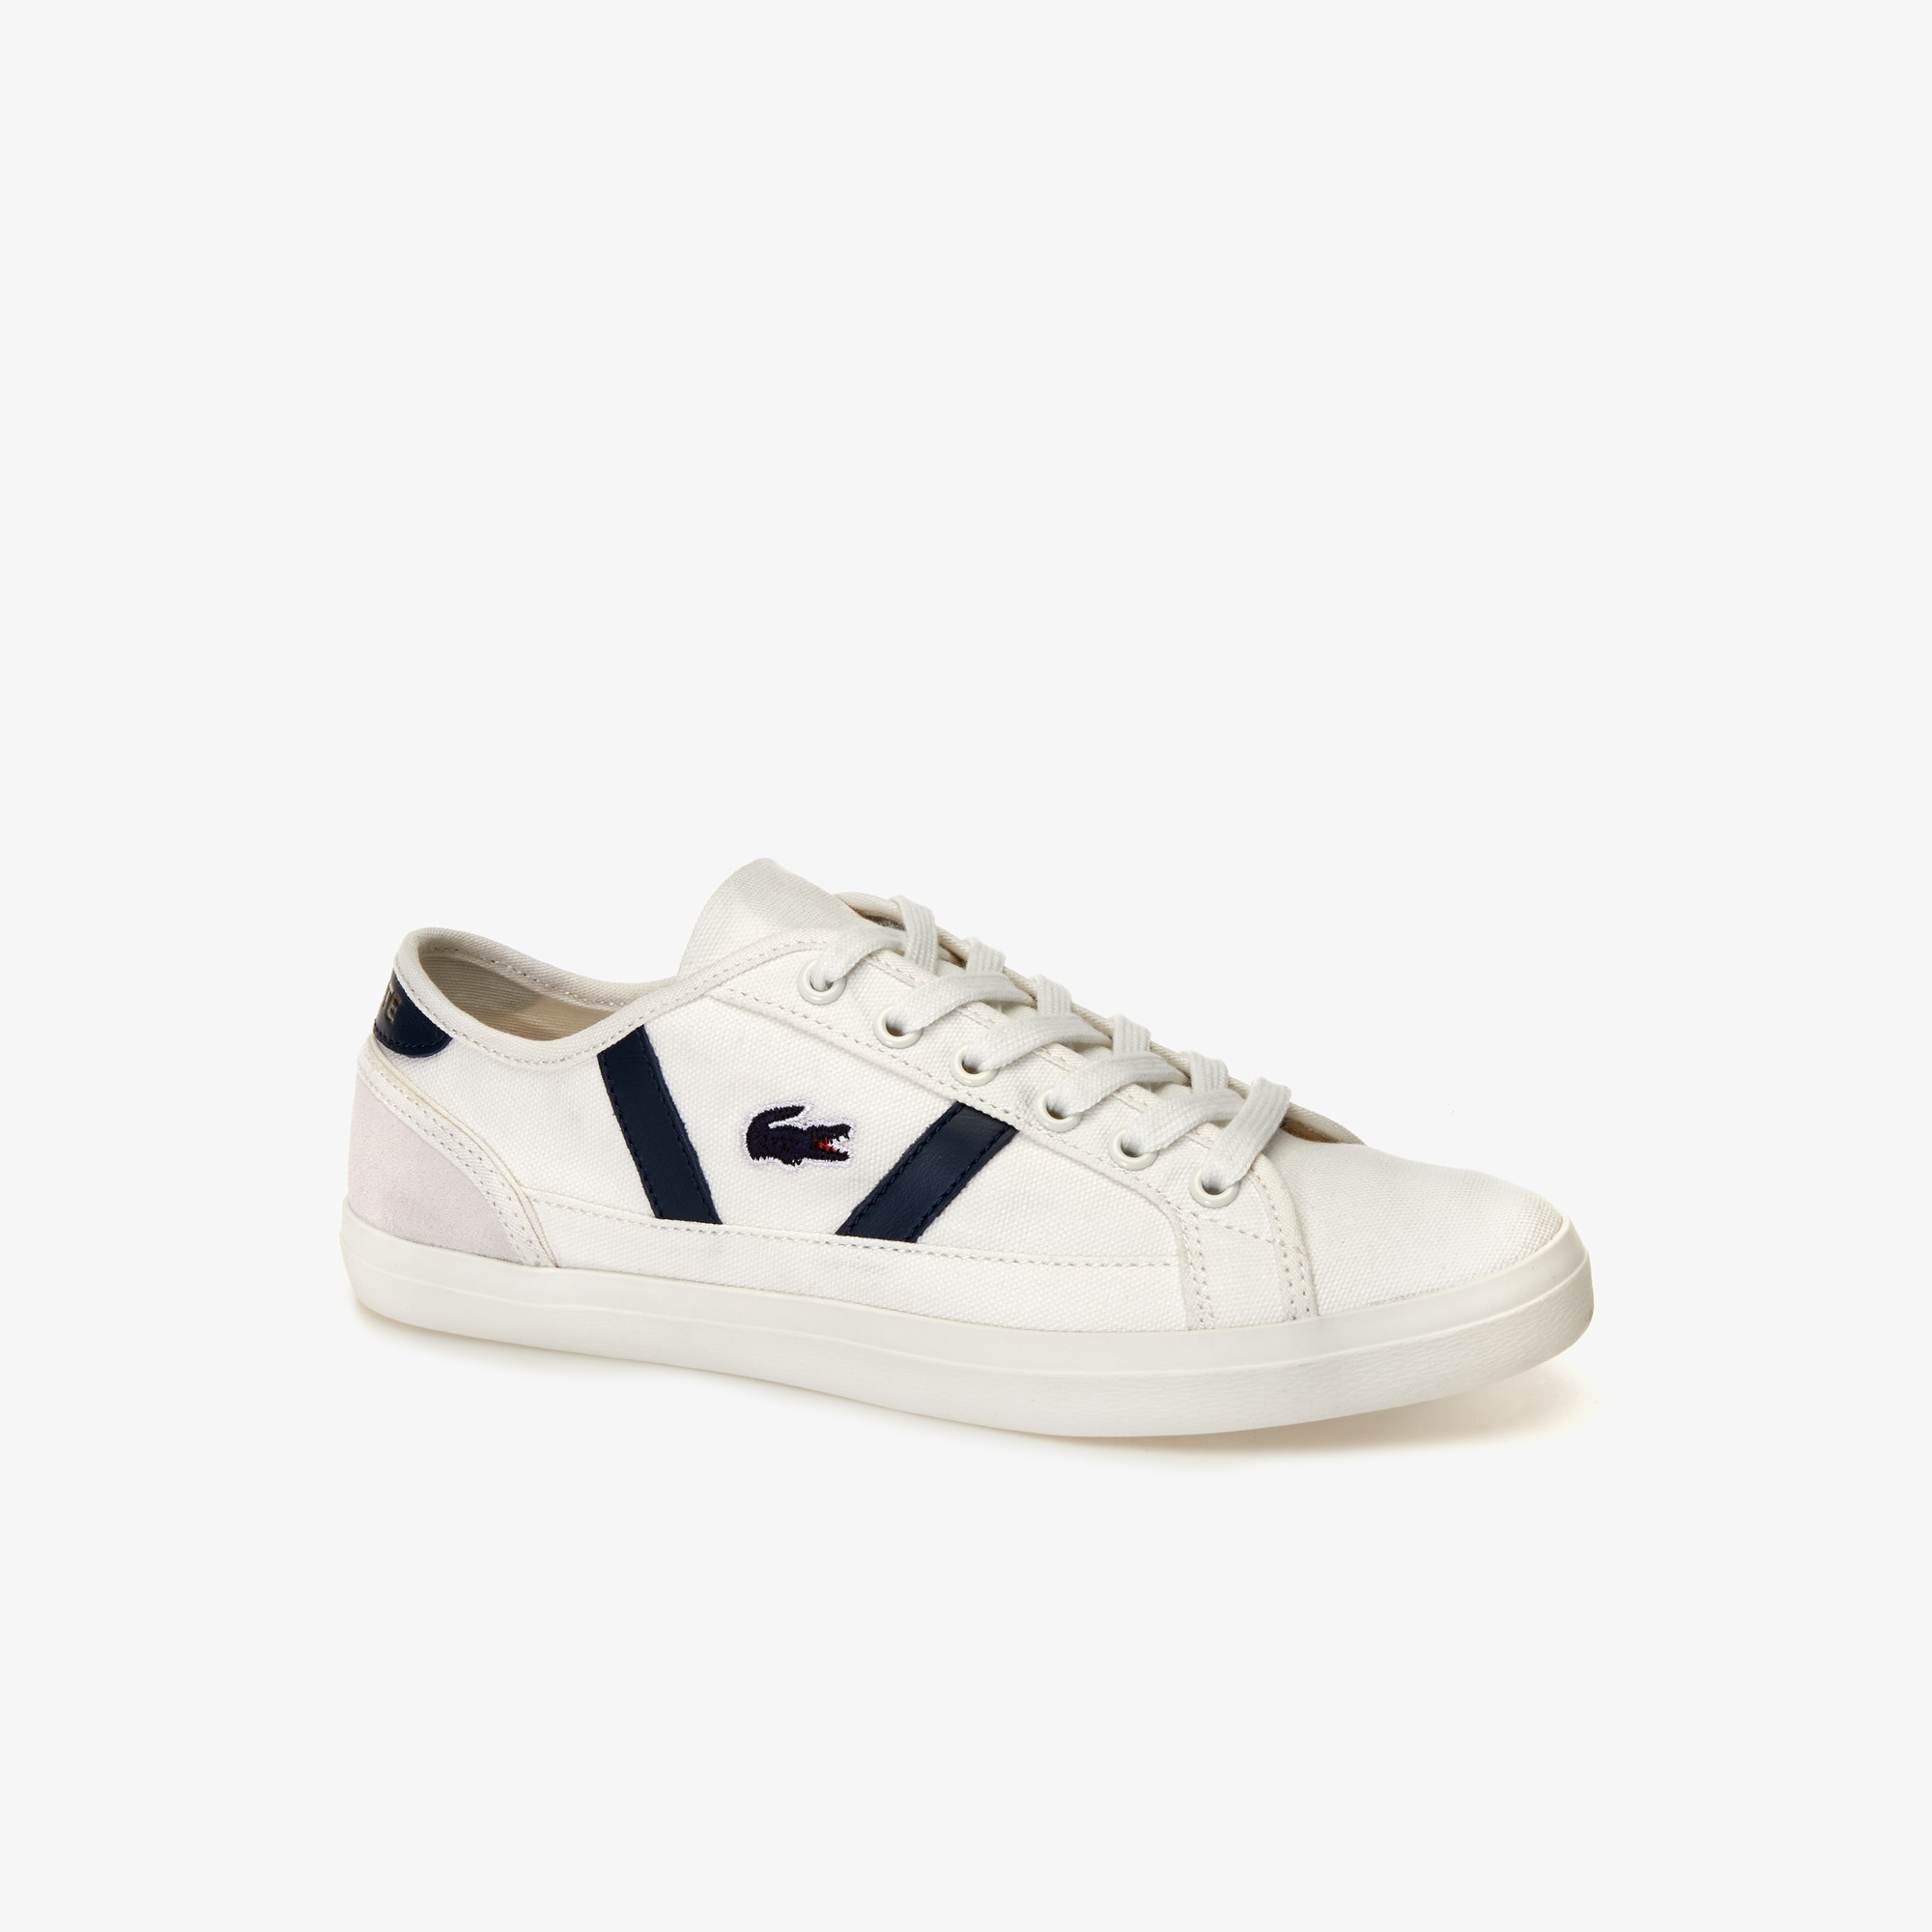 lacoste white leather sneakers womens